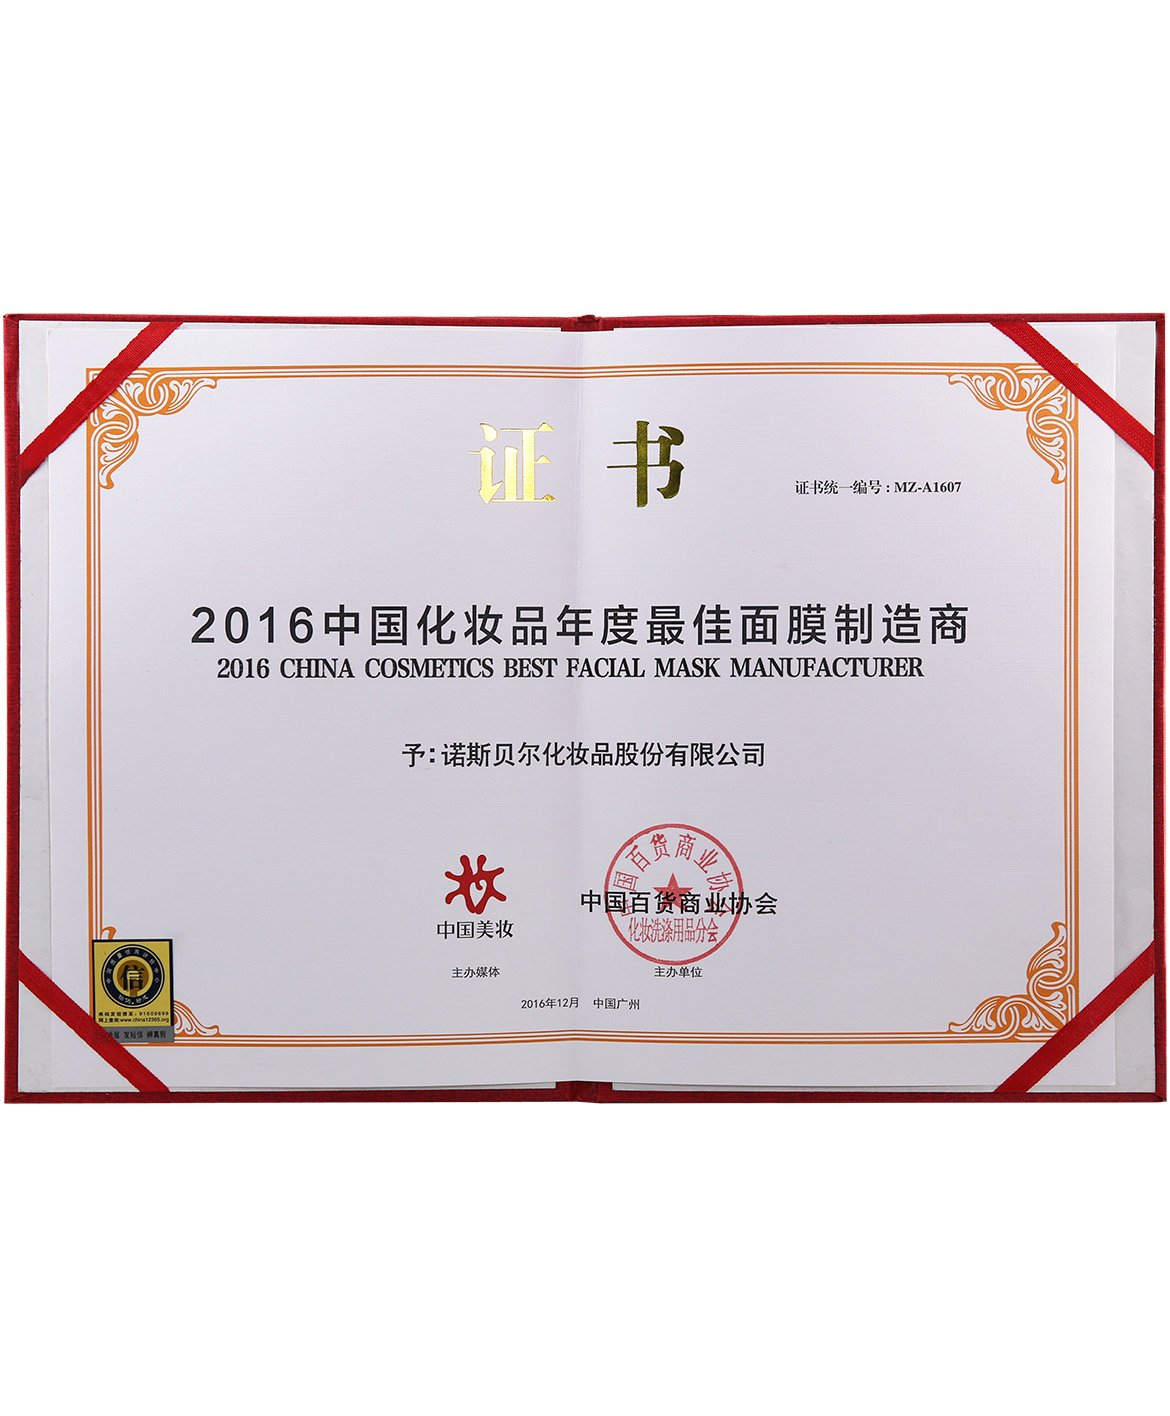 Best Mask Manufacturer in Cosmetics China 2016